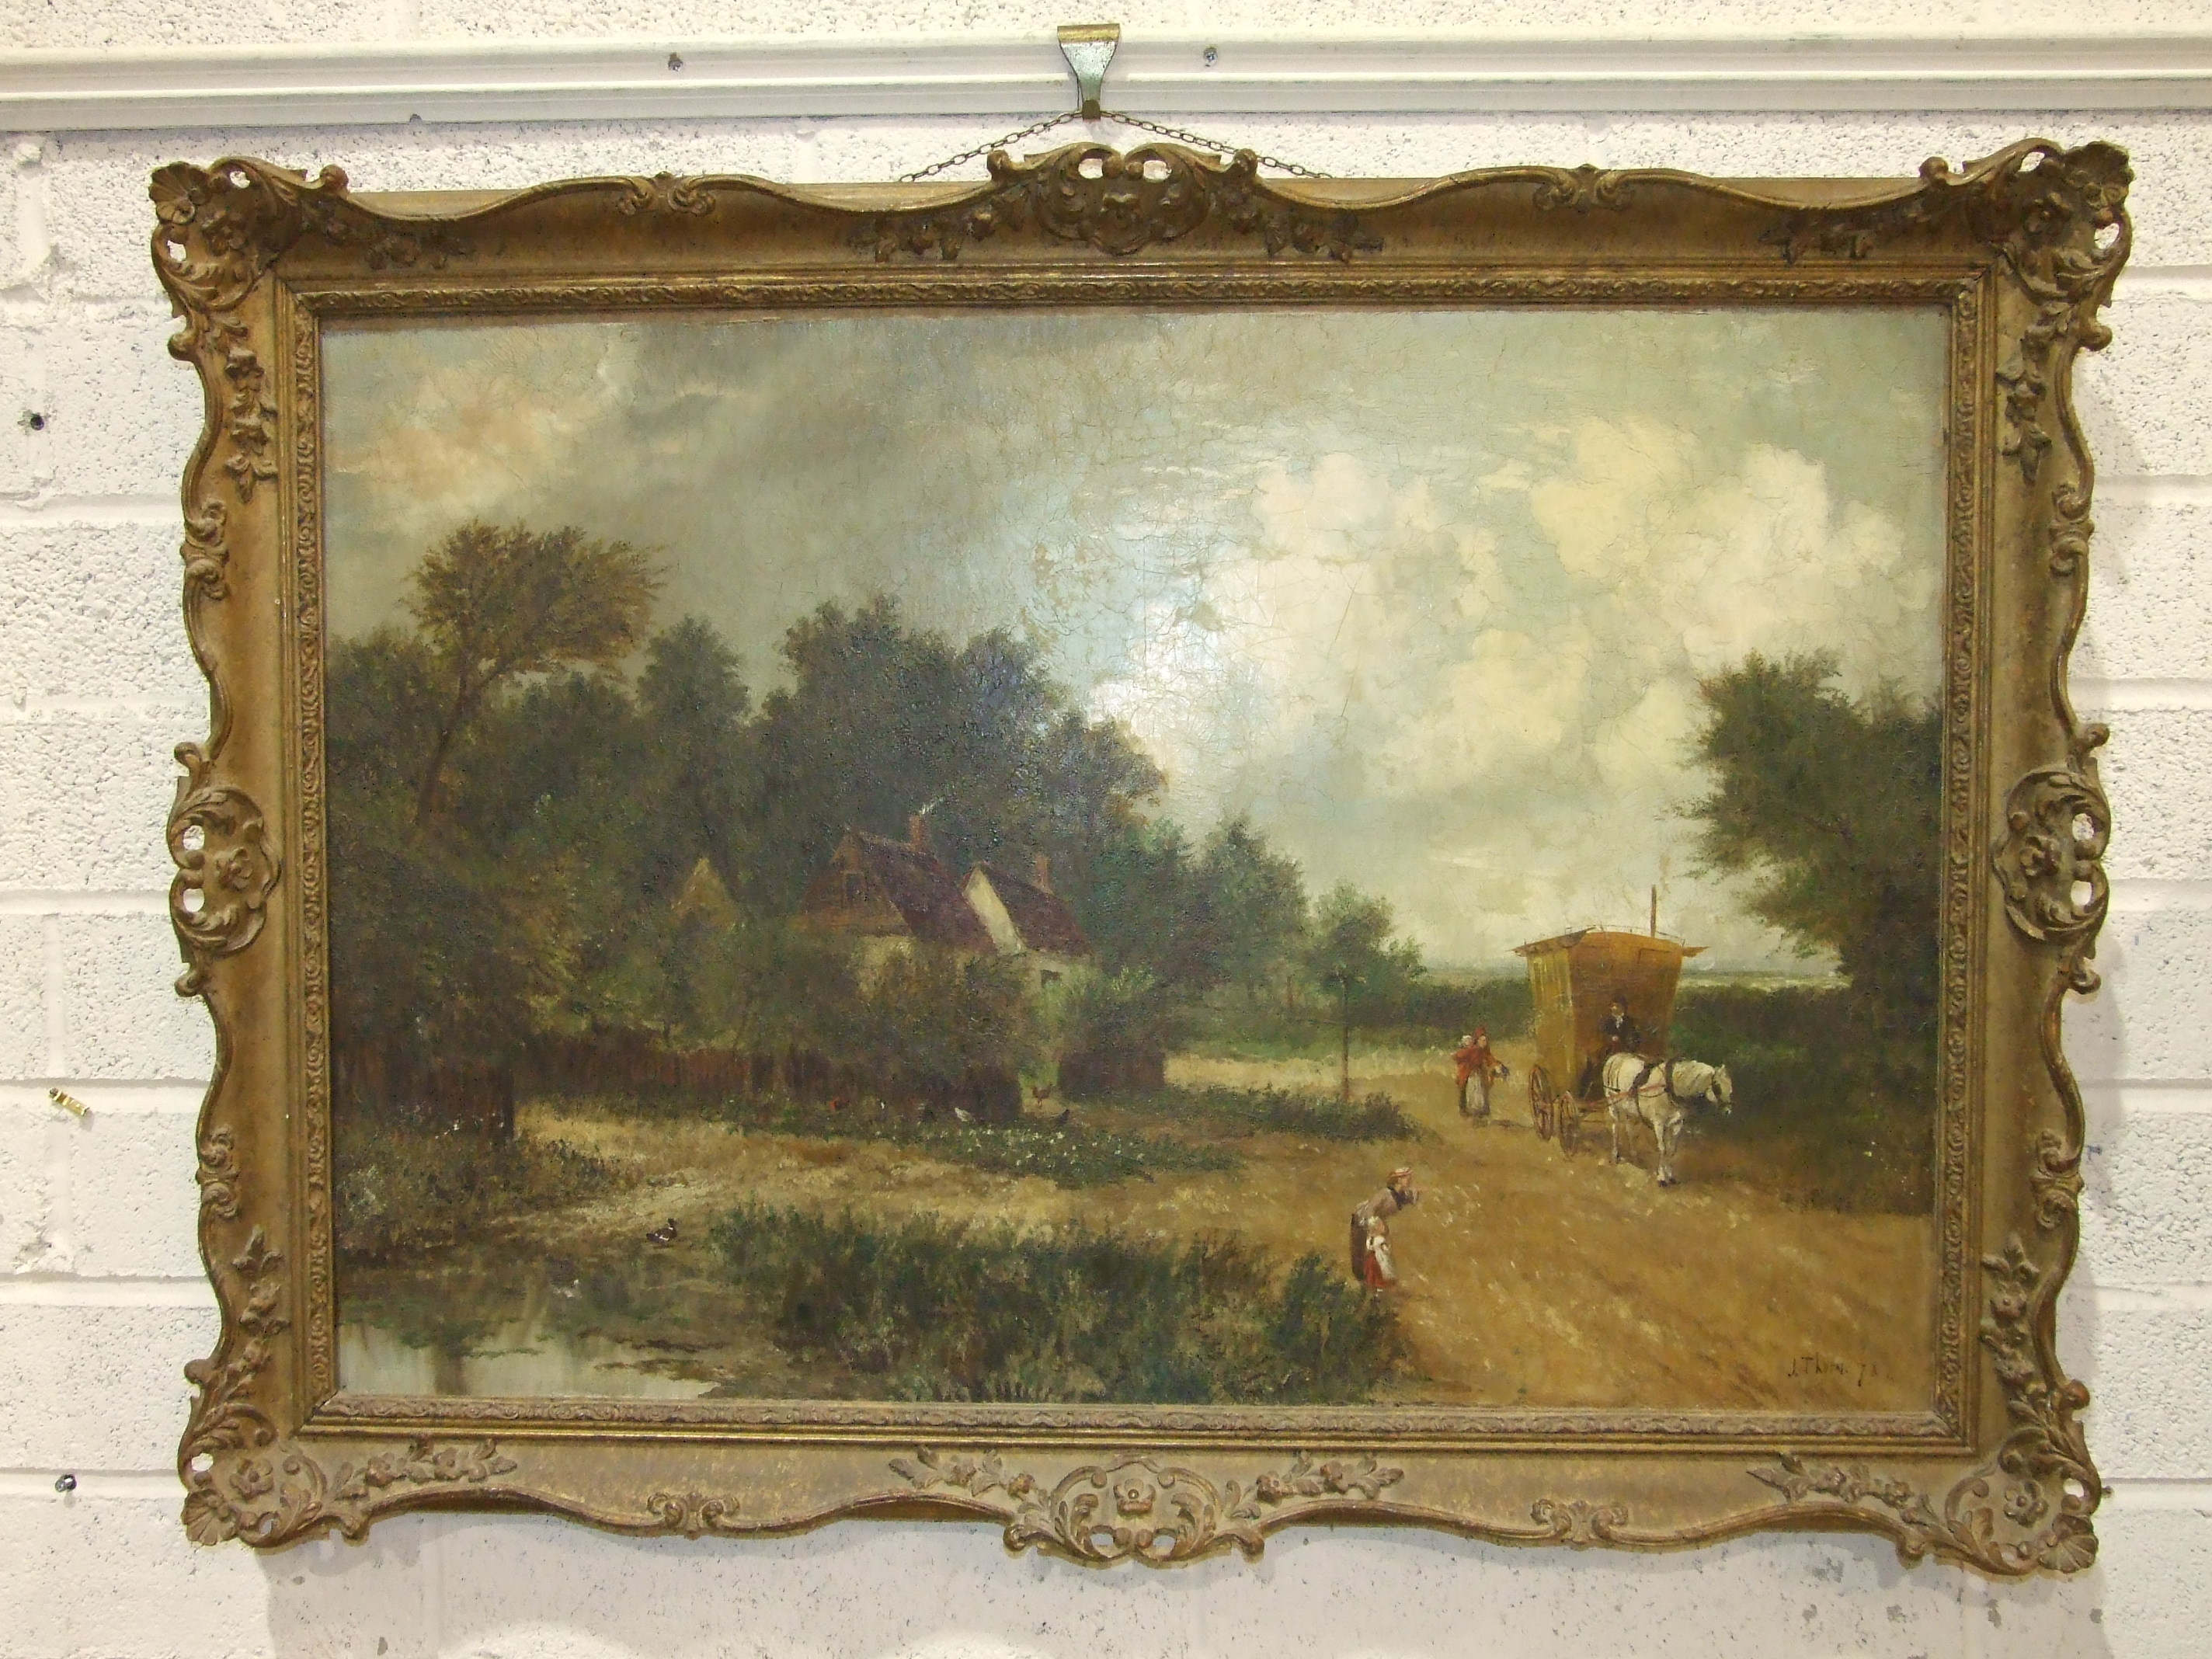 Lot 45 - J Thorn, Figures and a Horse-drawn Carriage Passing a Cottage, signed oil on canvas, dated '78, 60 x